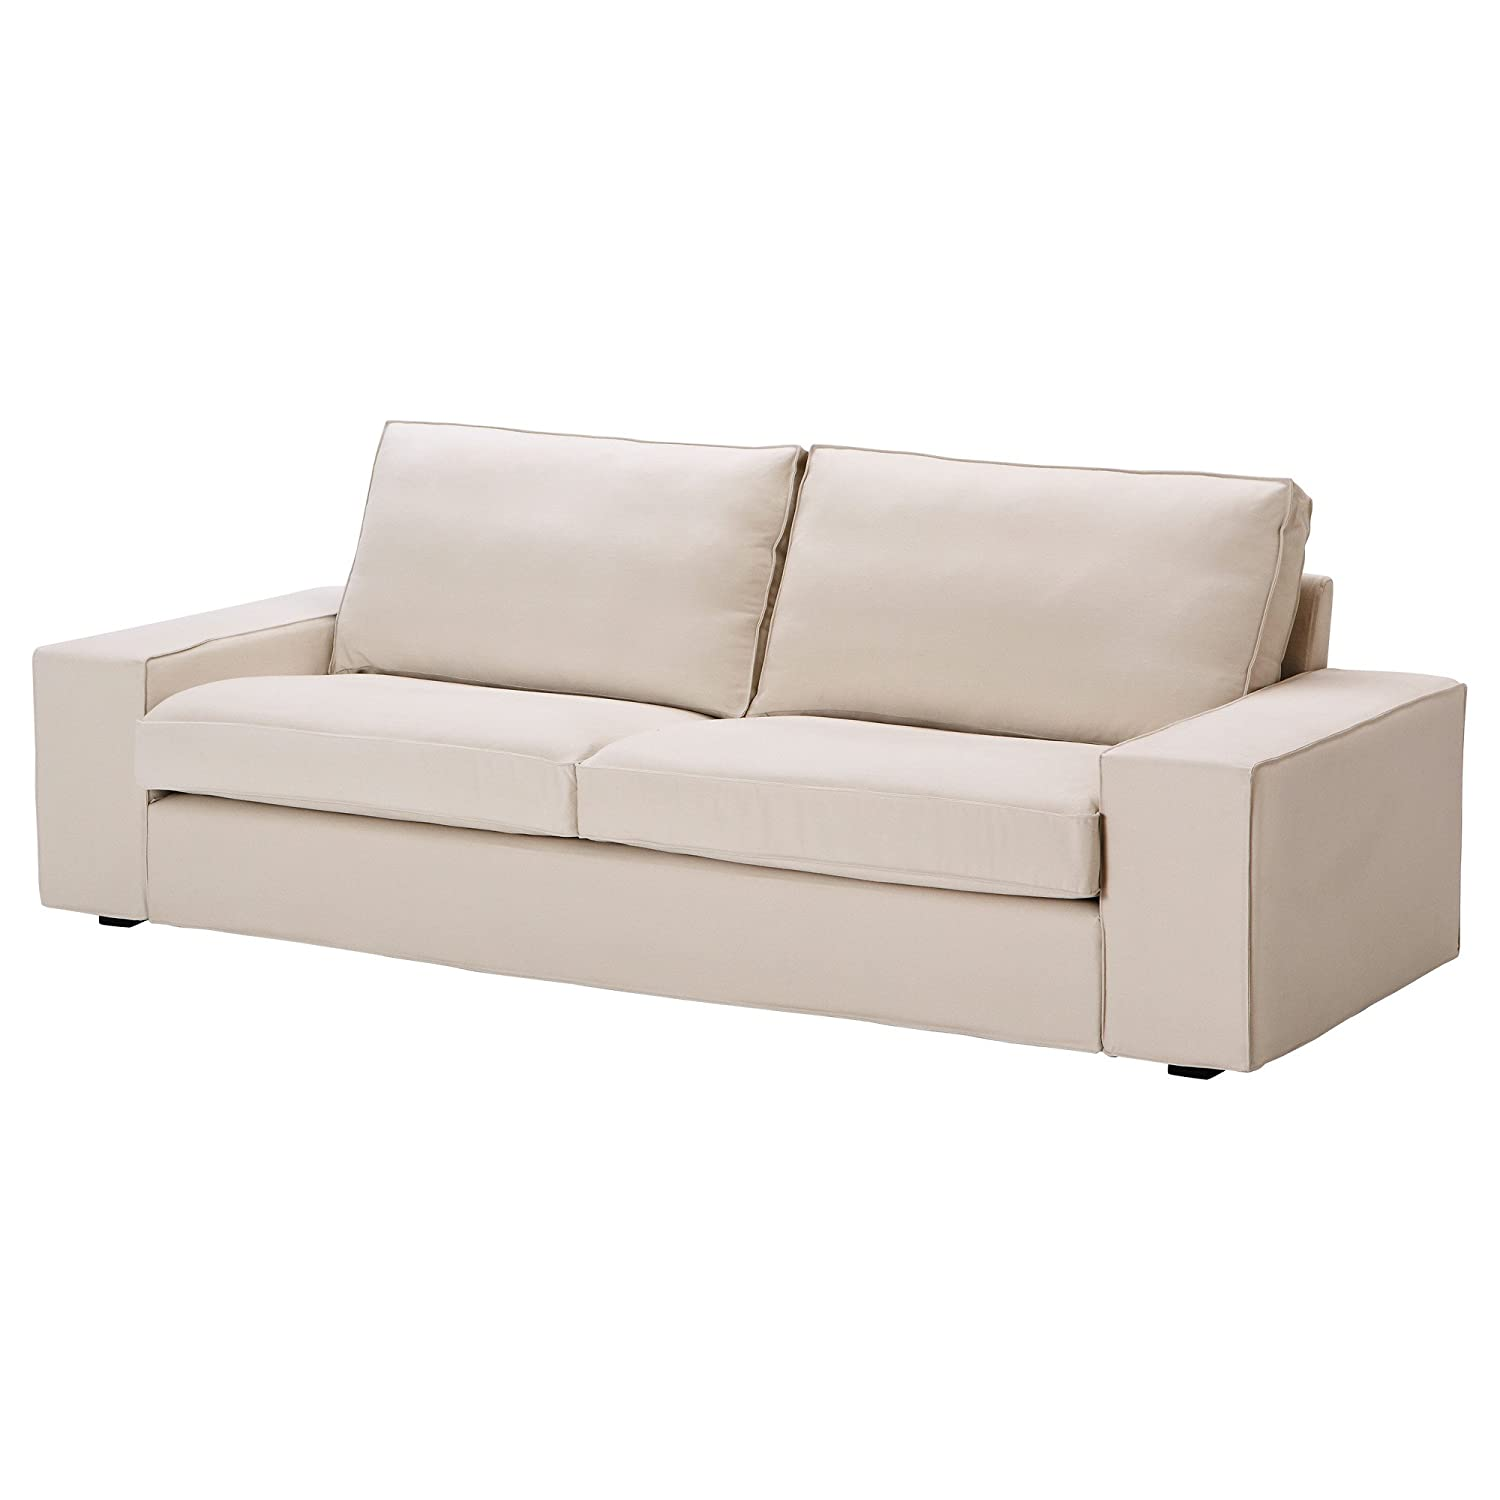 Amazon KIVIK Sofa slipcover Ingebo light beige IKEA Home